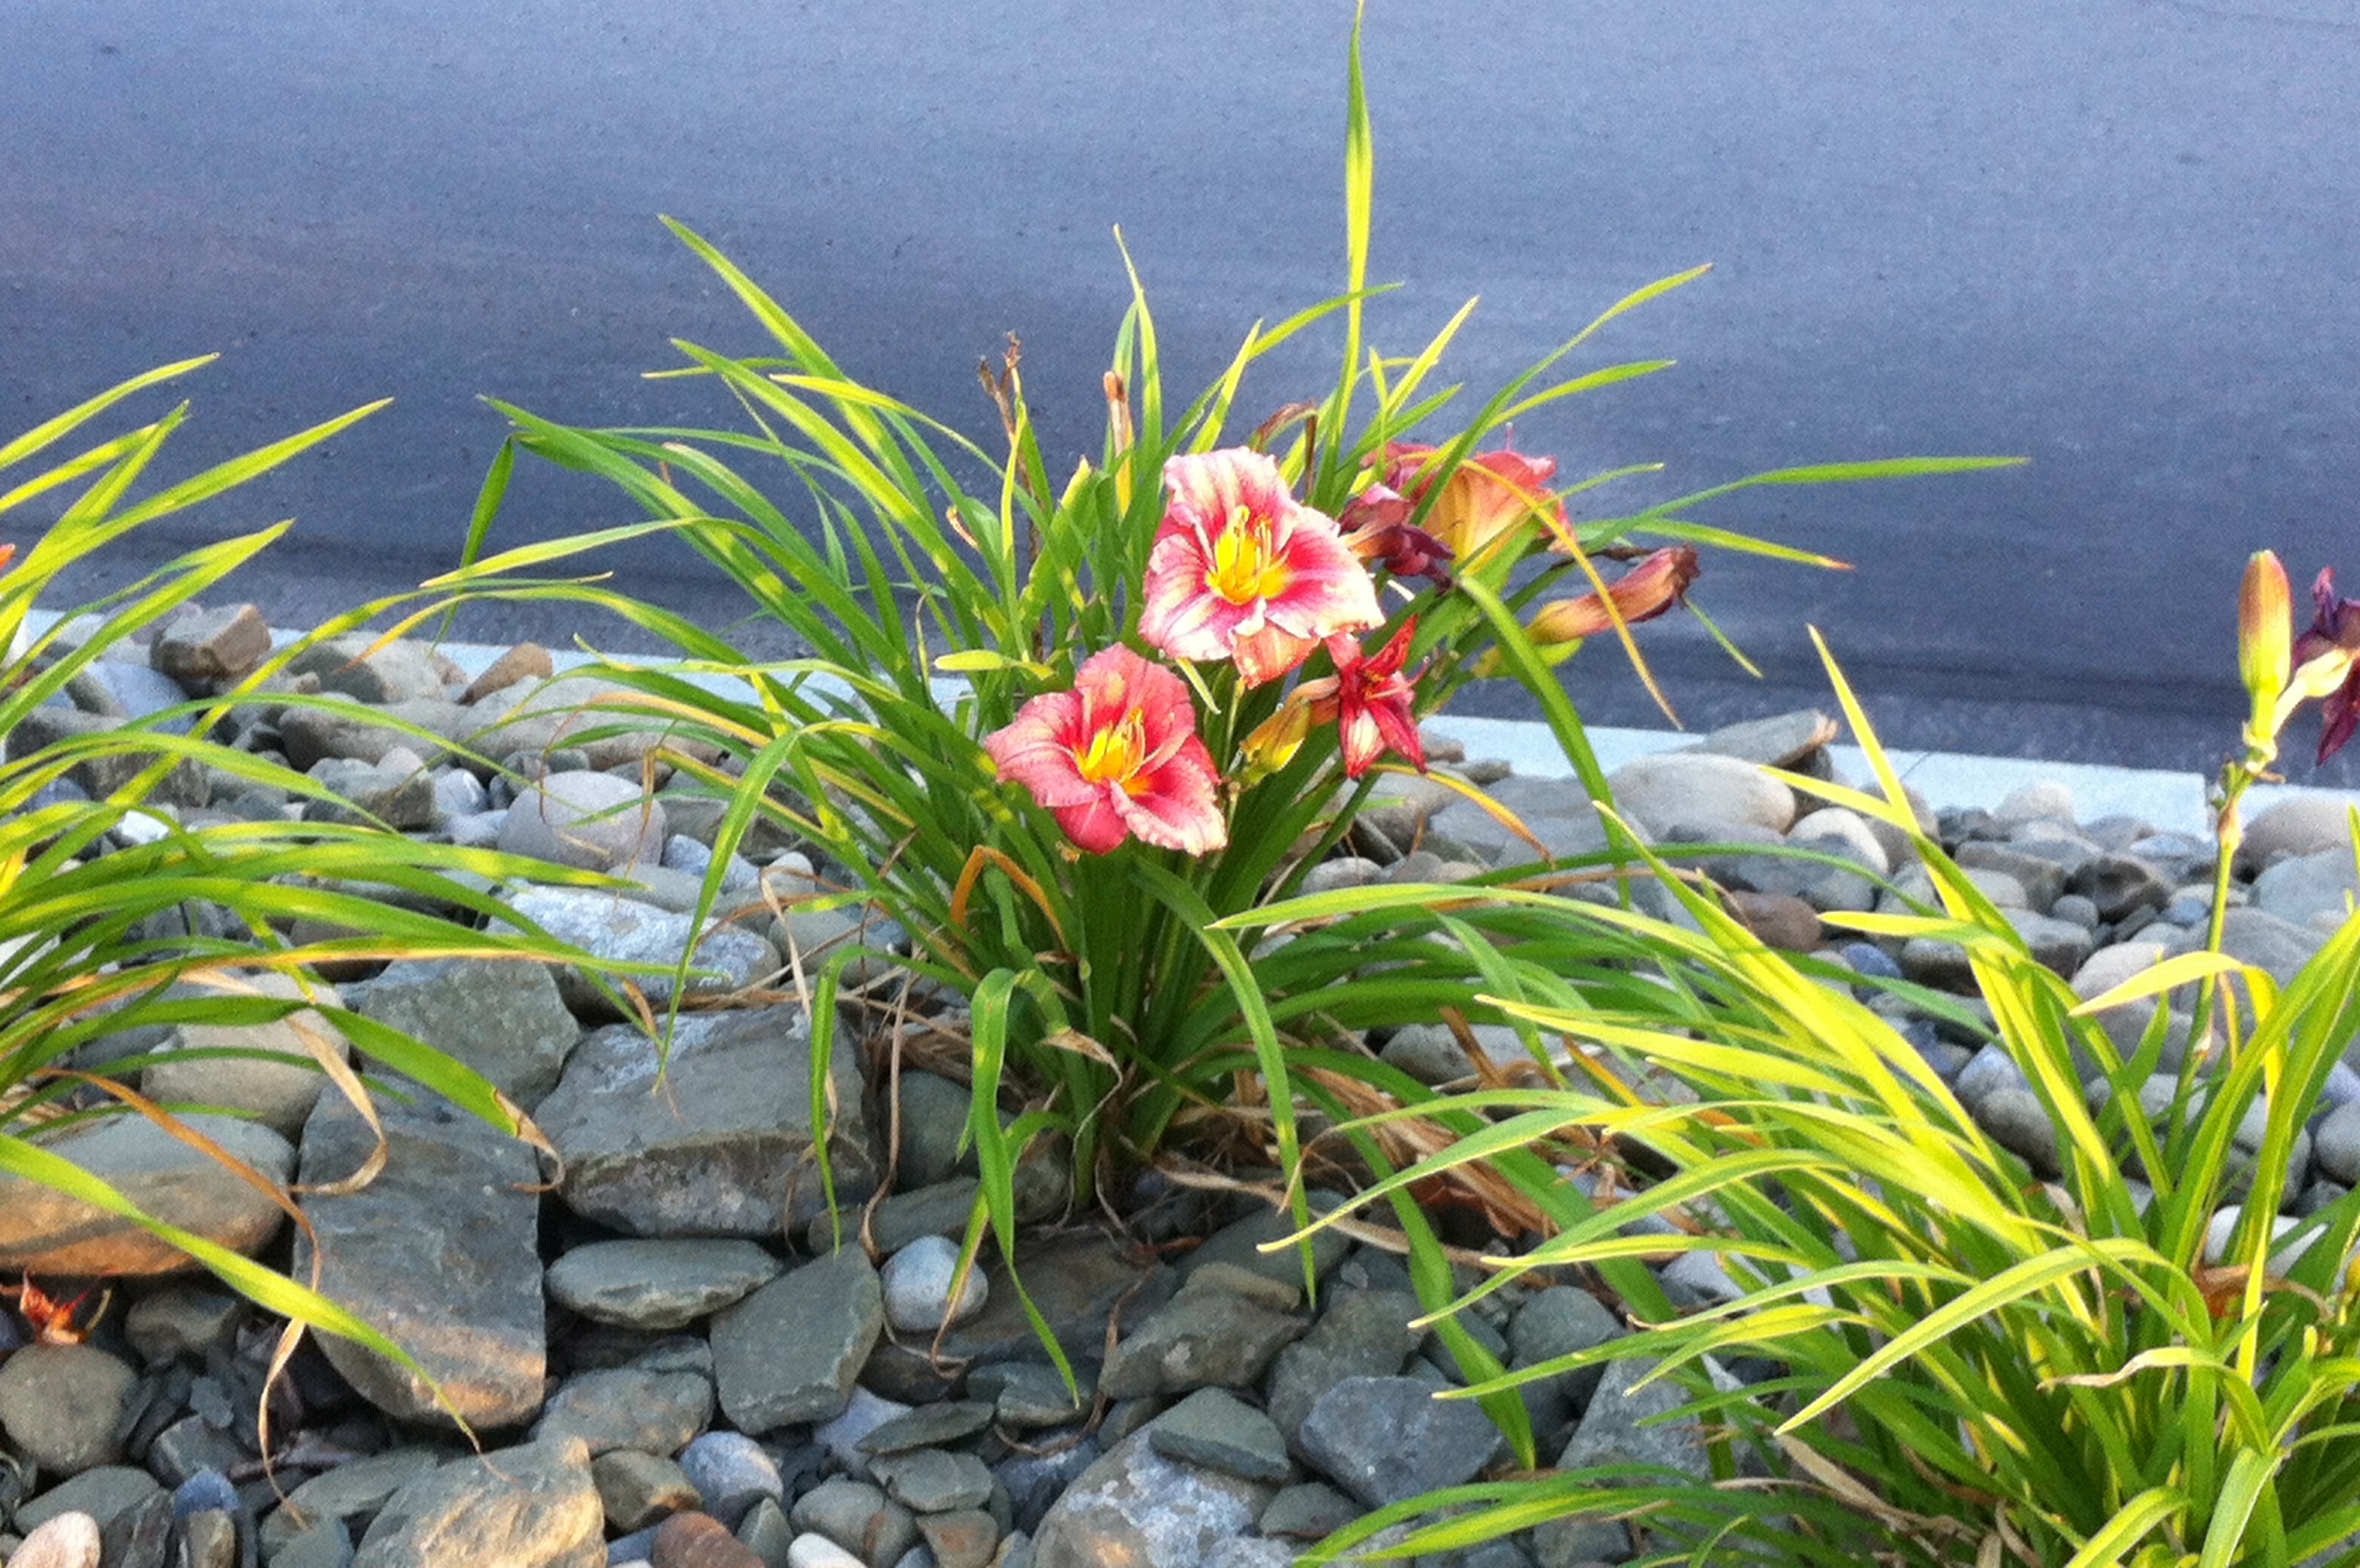 In parking lot..thriving flowers | Flowers - I don't want delivered ...